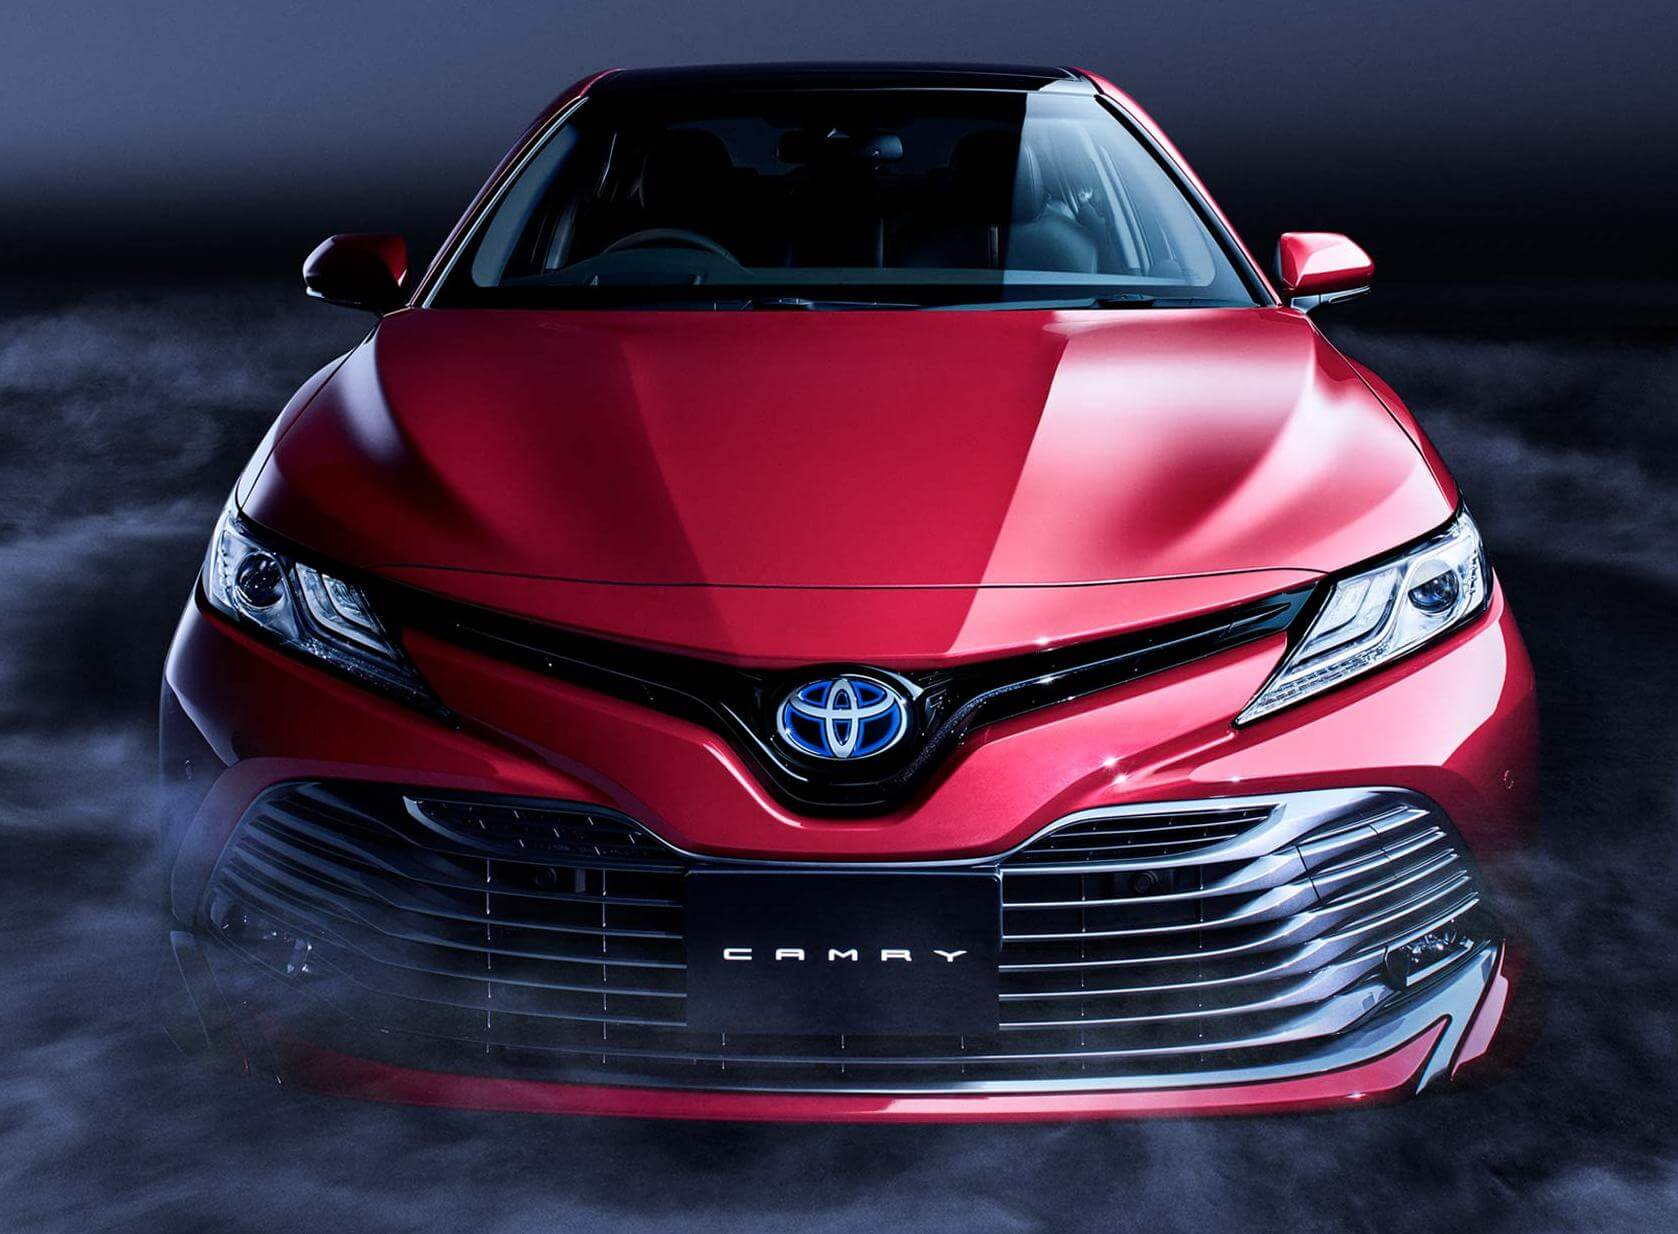 Toyota Camry Wallpaper